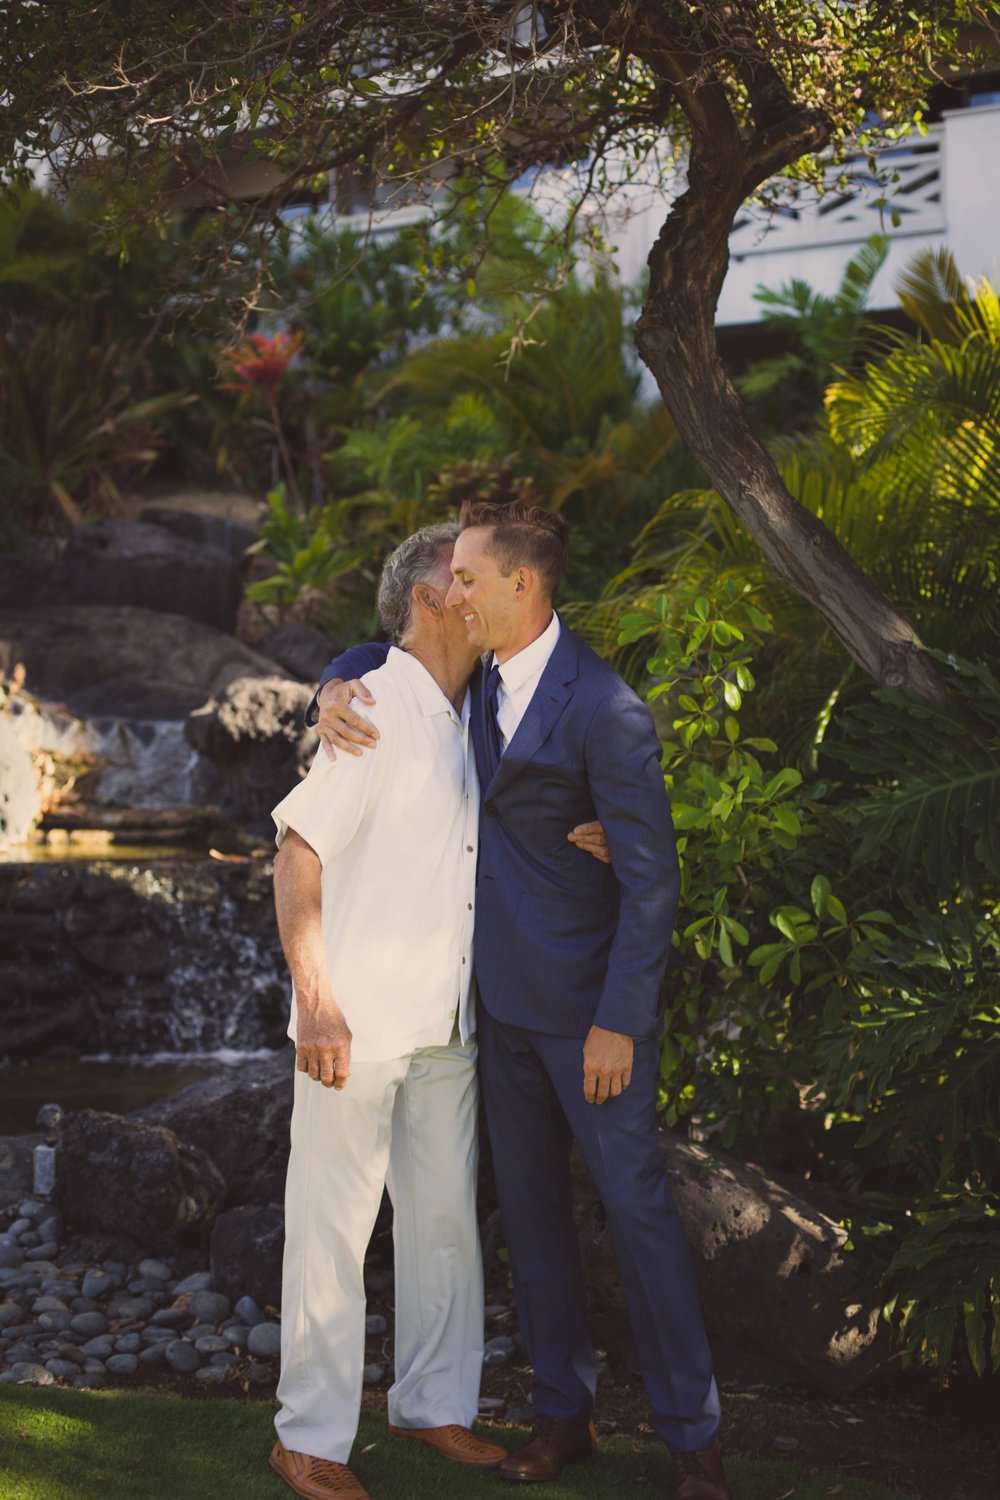 big island hawaii fairmont orchid beach wedding © kelilina photography 20170812165212-1.jpg